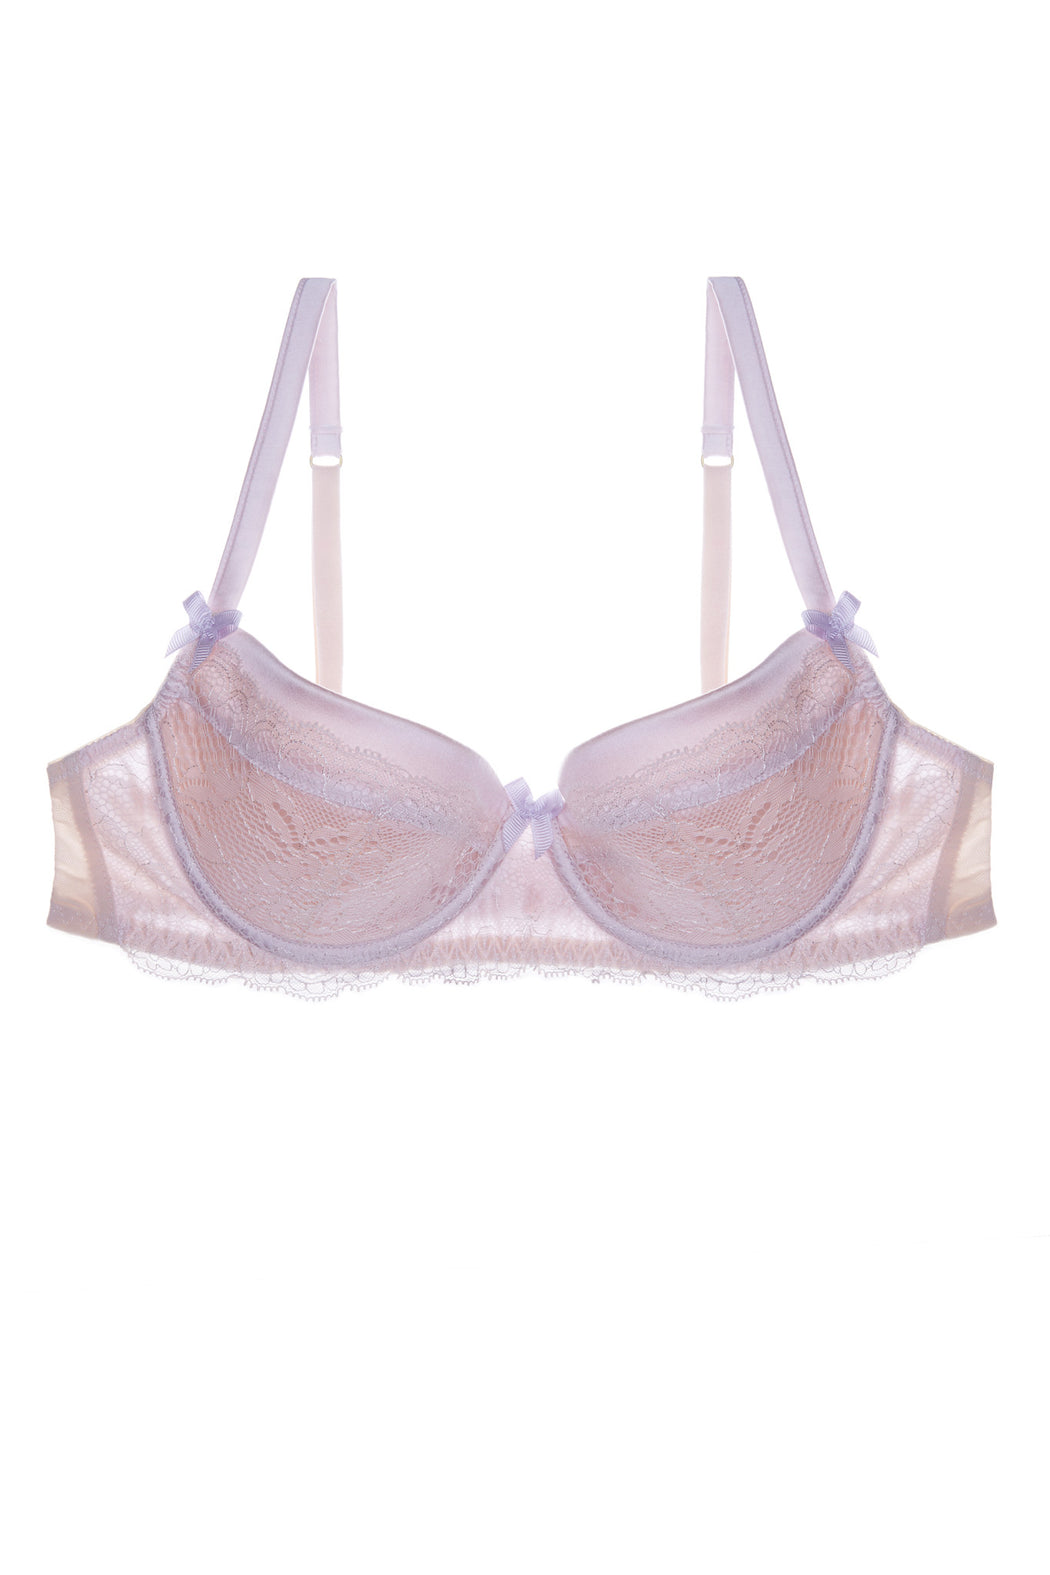 Sugar Pie silk and lace balcony bra by Mimi Holliday workingirls lingerie